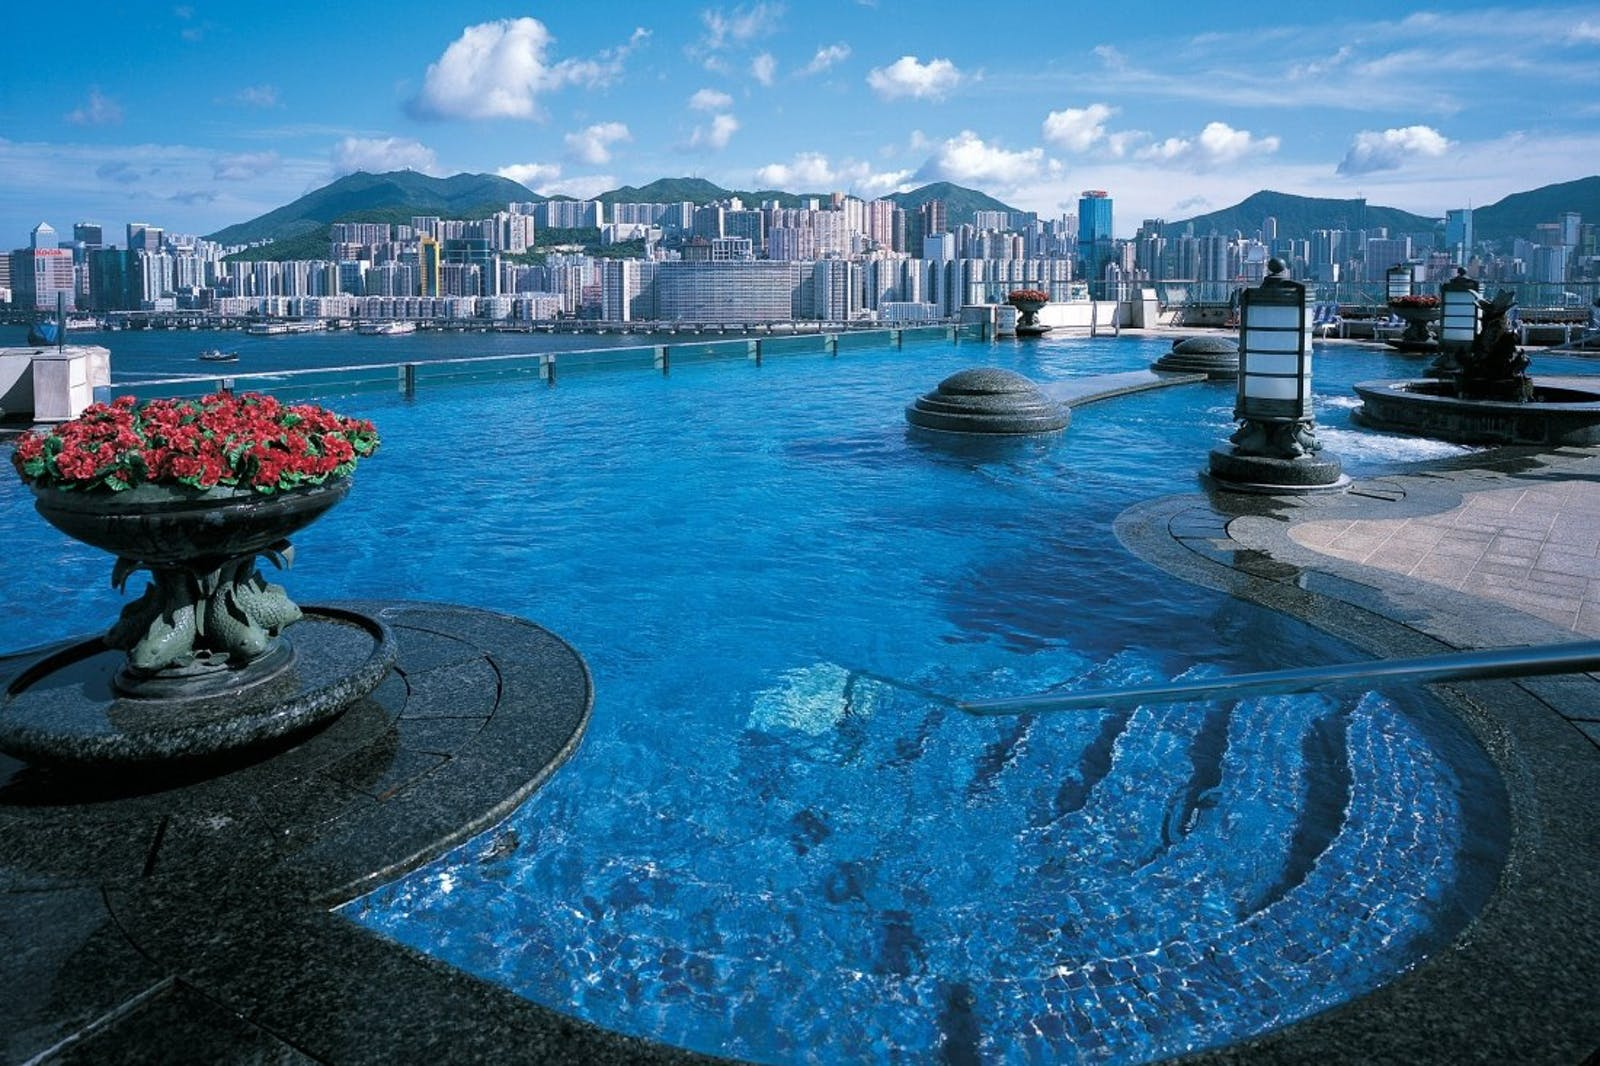 Pool area at Harbour Grand Kowloon